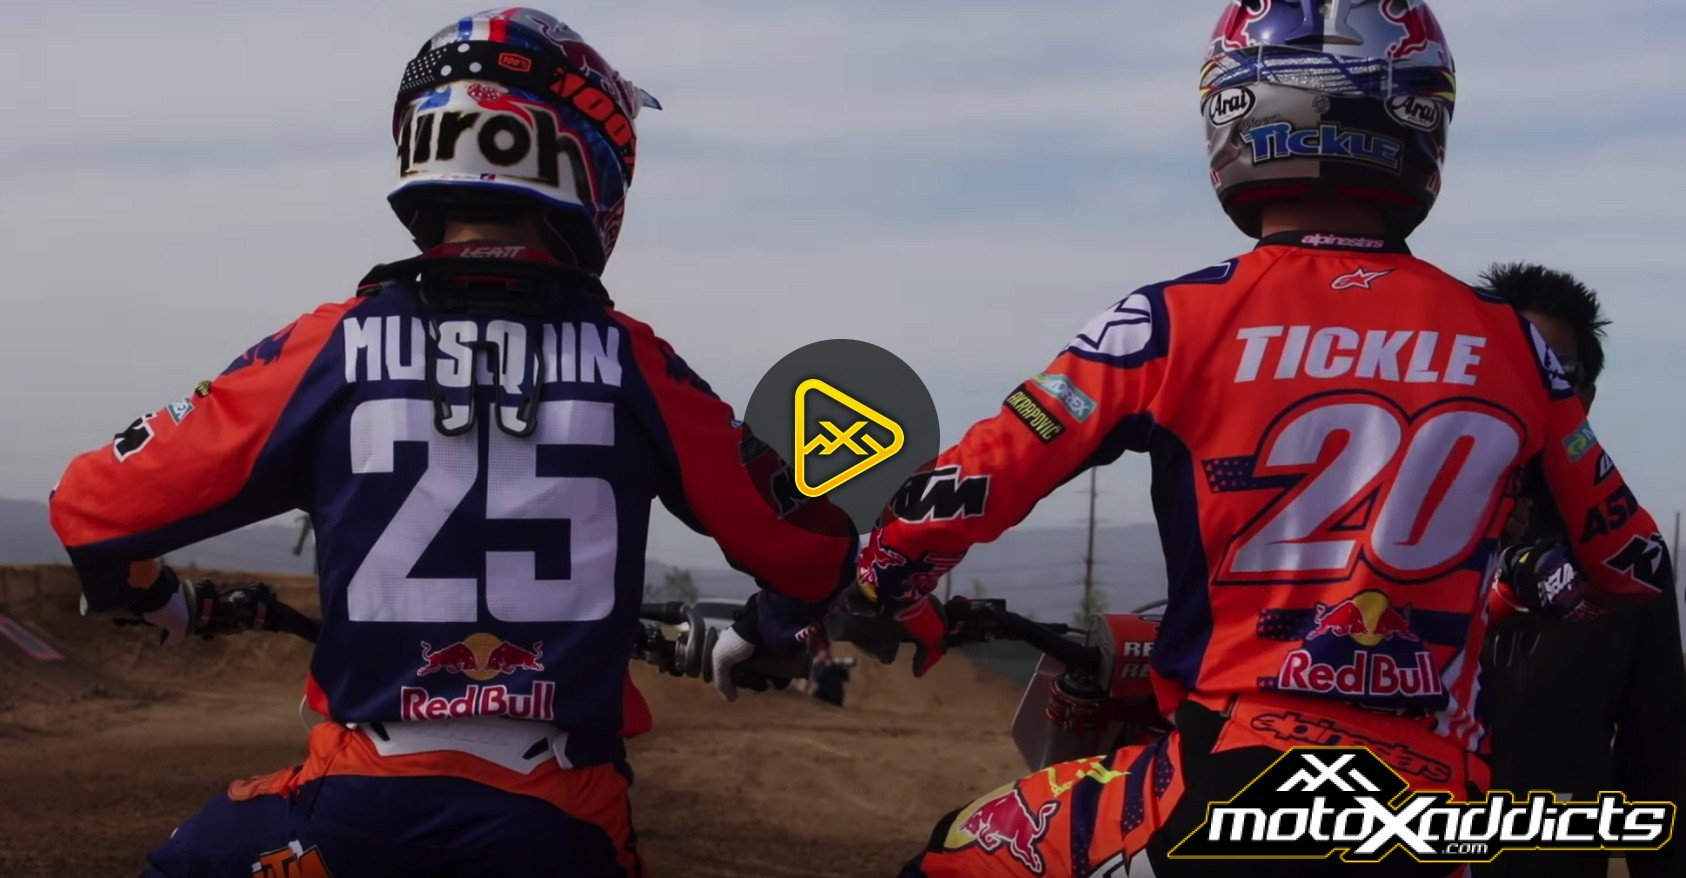 KTM ready for 2018 SX – Dungey, Musquin, Baggett, Tickle, & More